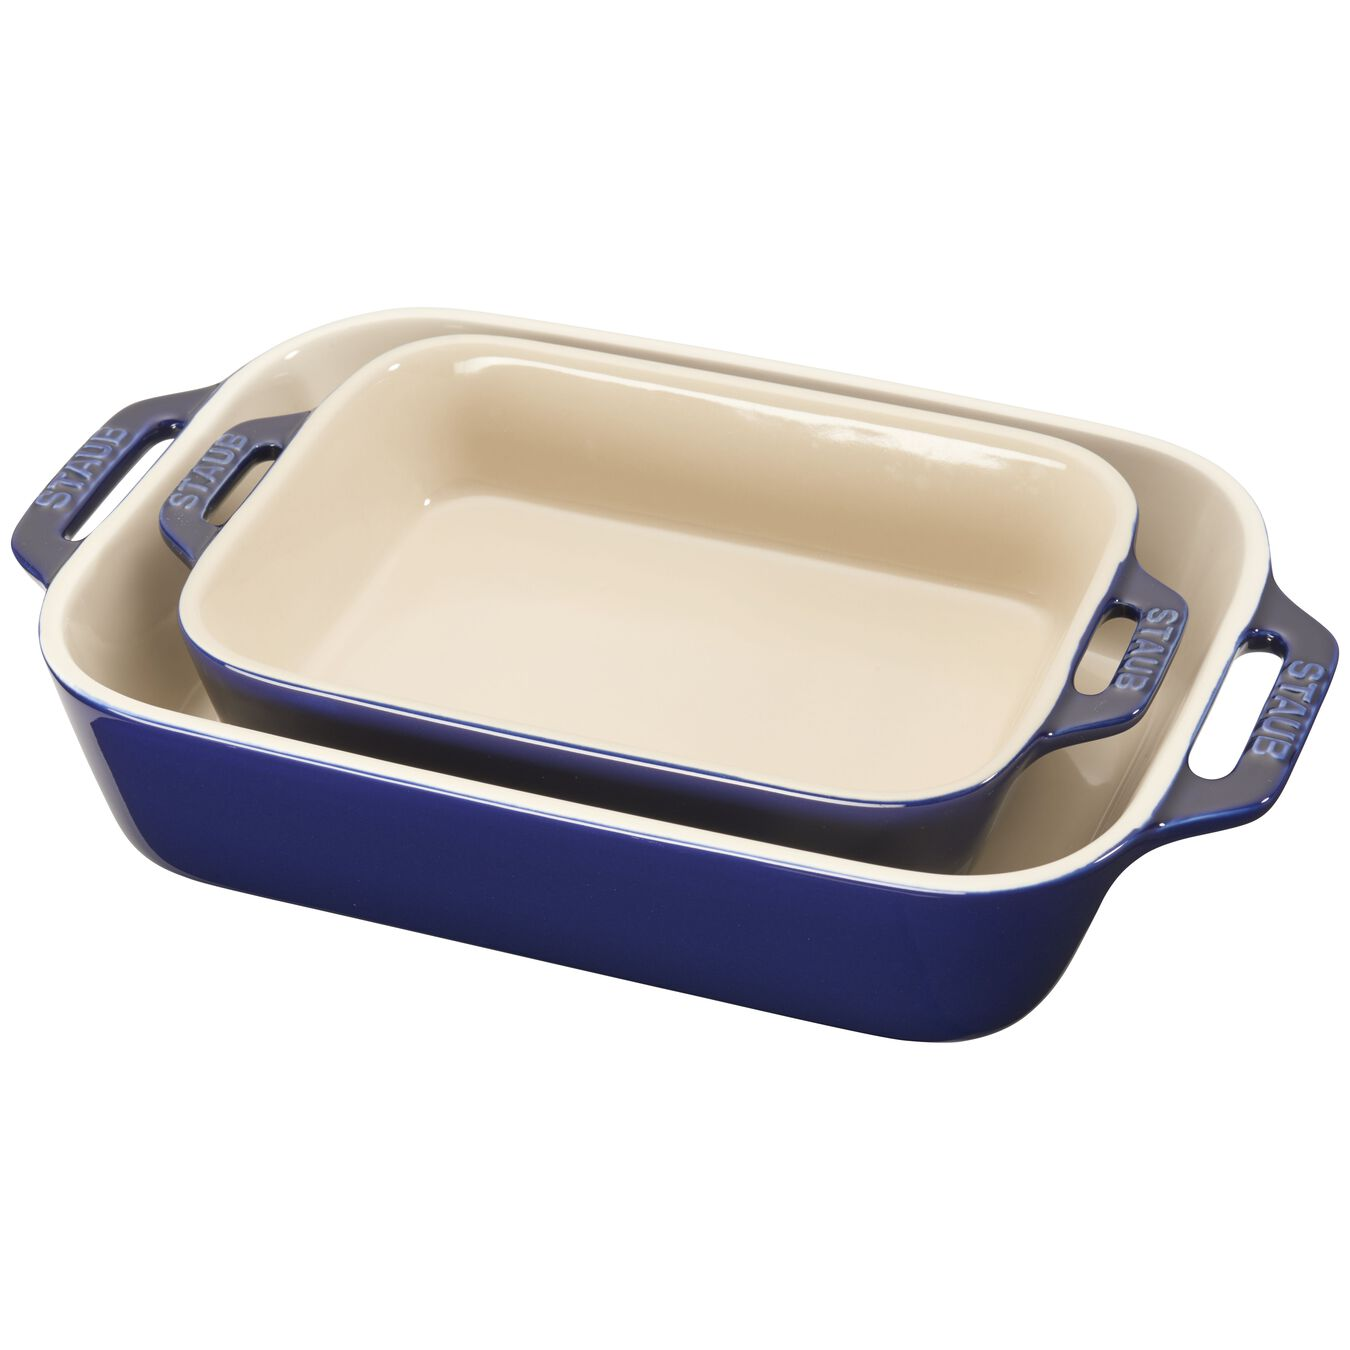 2-pc Rectangular Baking Dish Set - Dark Blue,,large 1